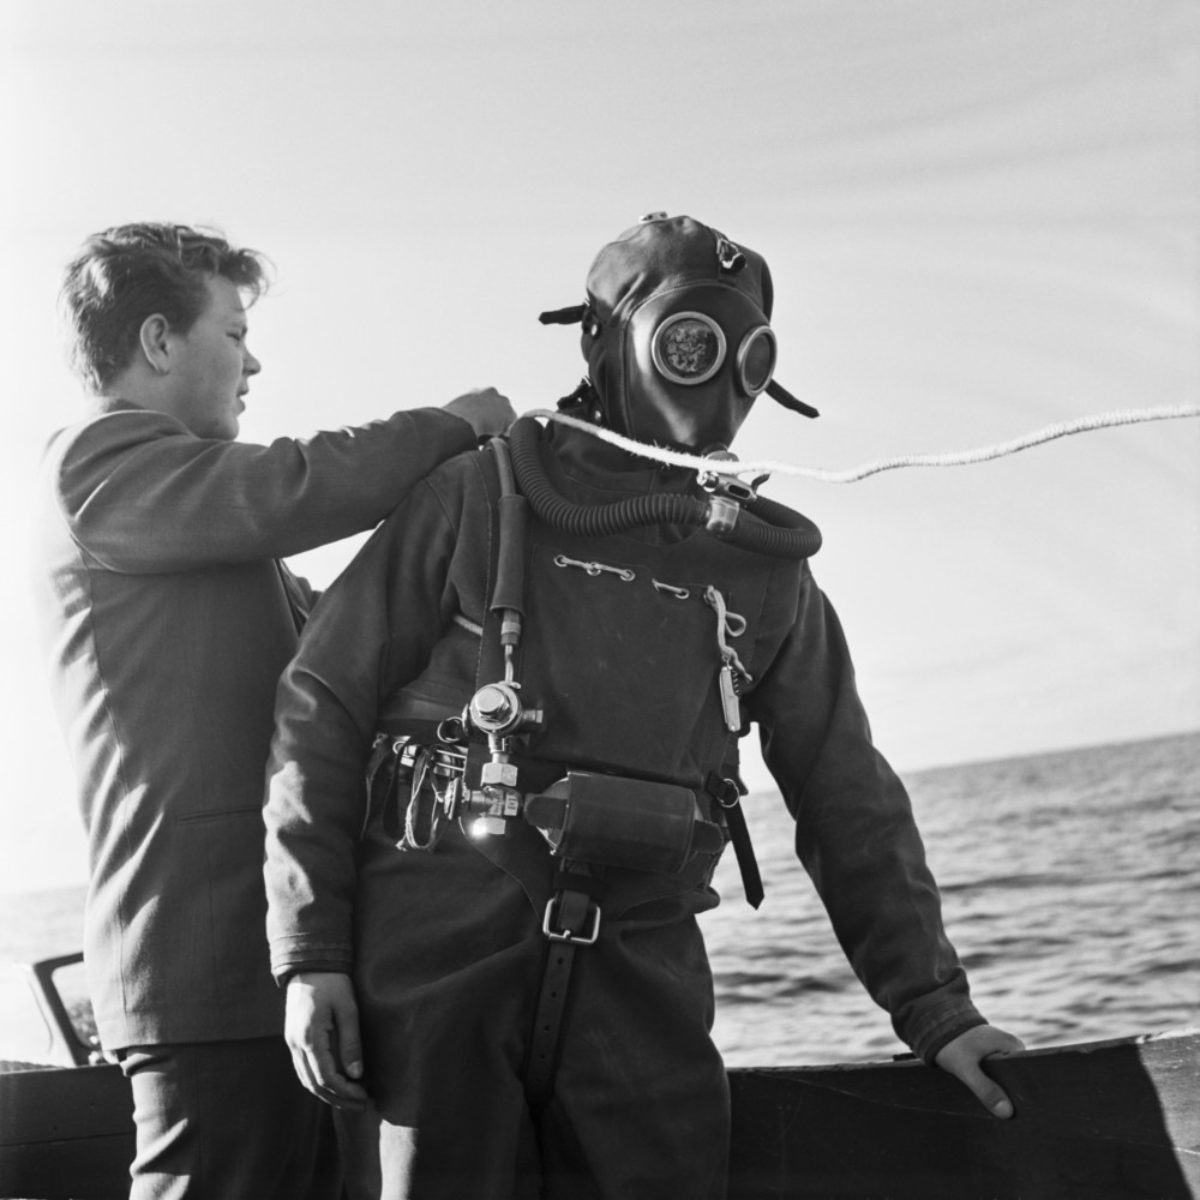 Matti Jämsä preparing to beat the Draeger DW-38 diving suit's deep diving record in 1954. Jämsä dived to 61 metres. Photo: UA Saarinen / Press Photo Archive JOKA / Finnish Heritage Agency